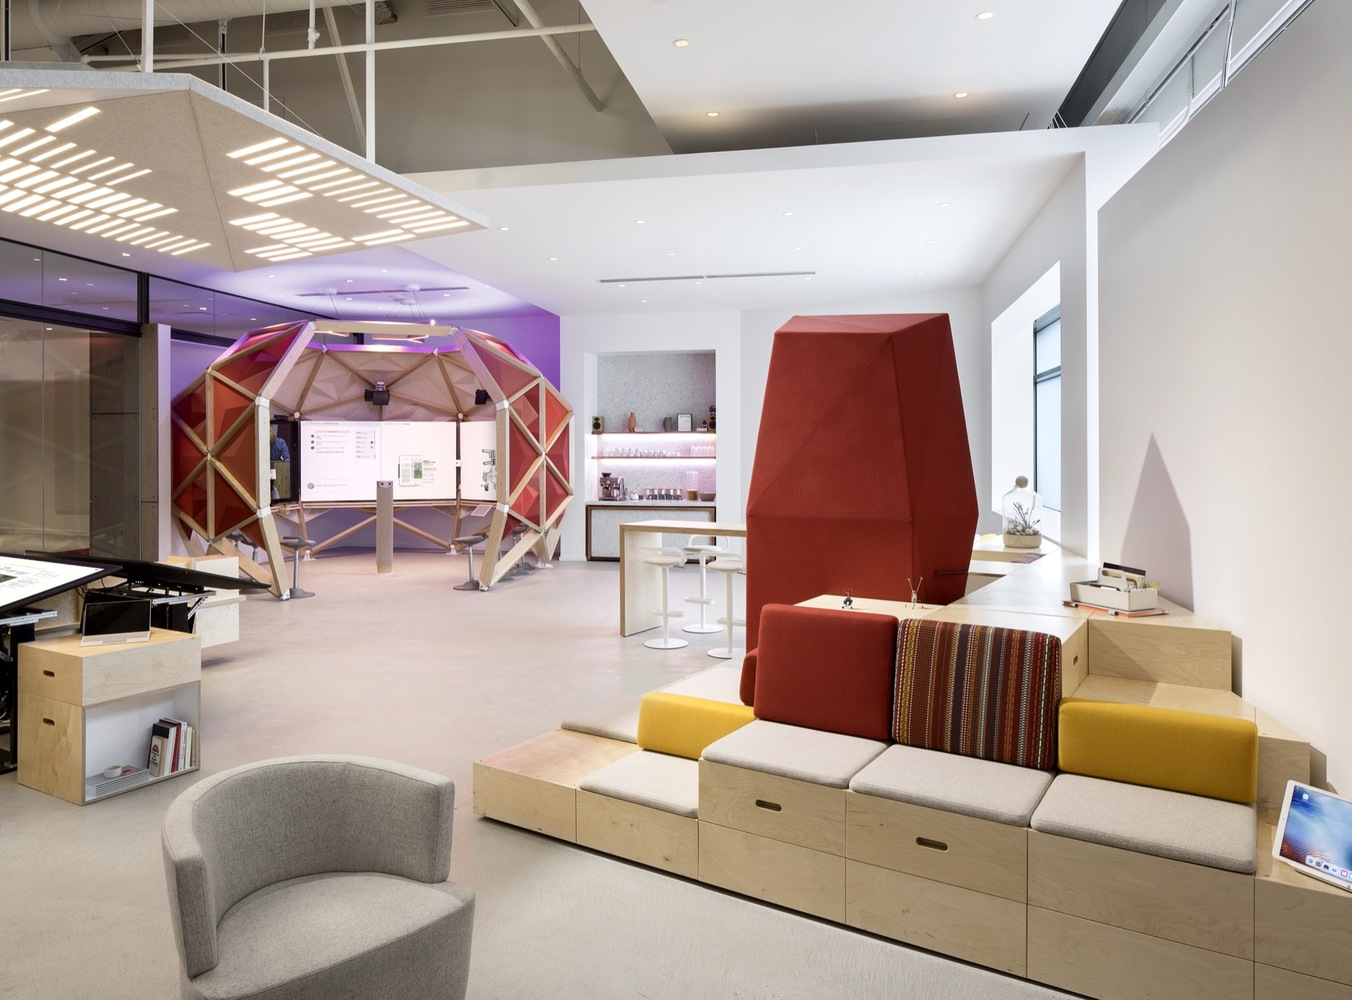 Microsofts envisioning center by studio o a